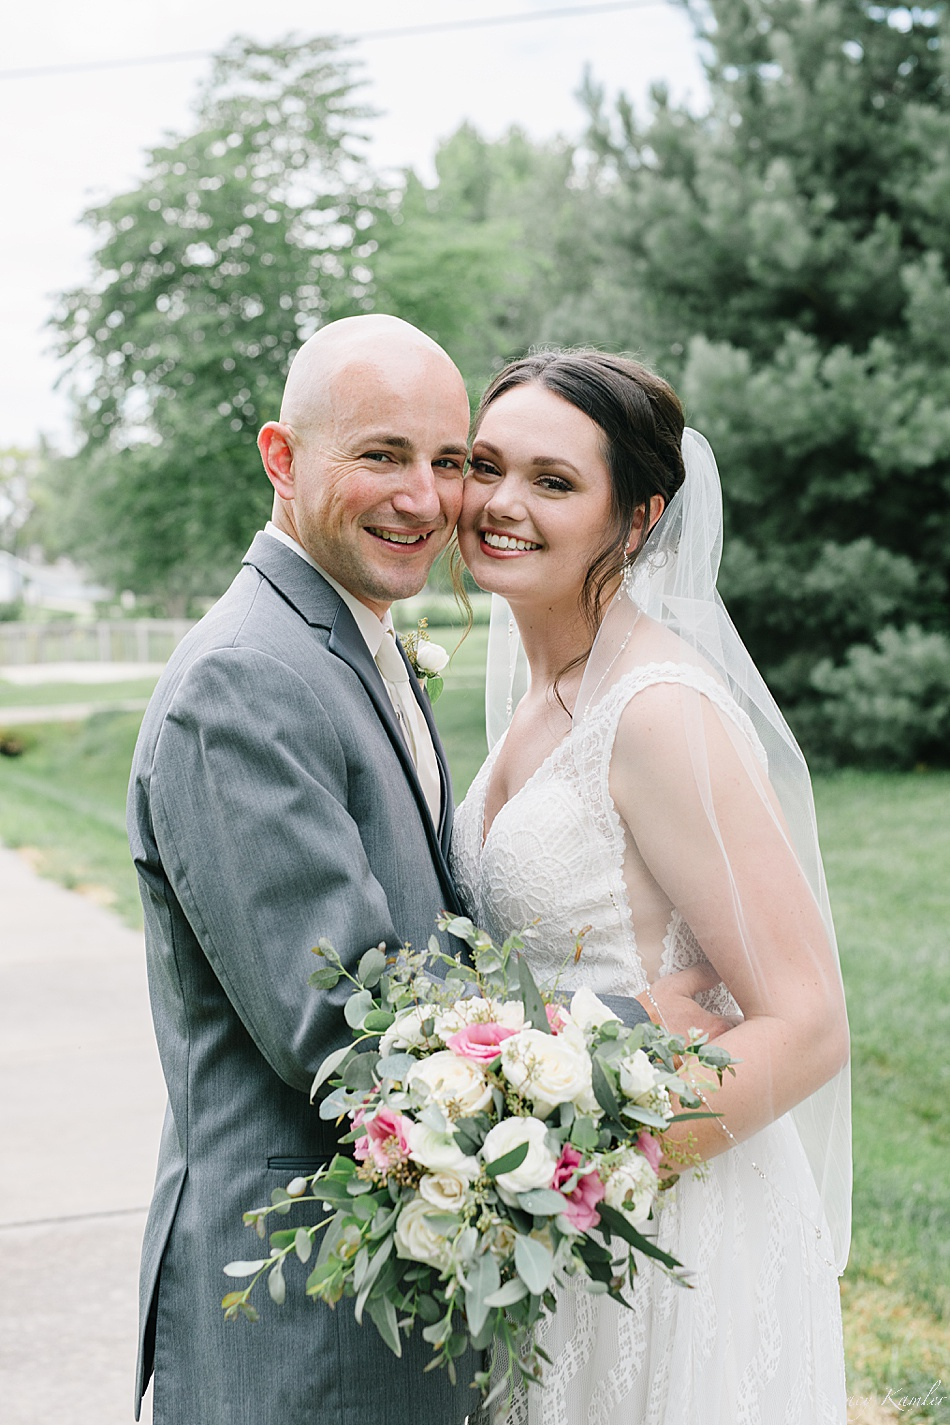 Groom in Grey tux and bride in white tank dress